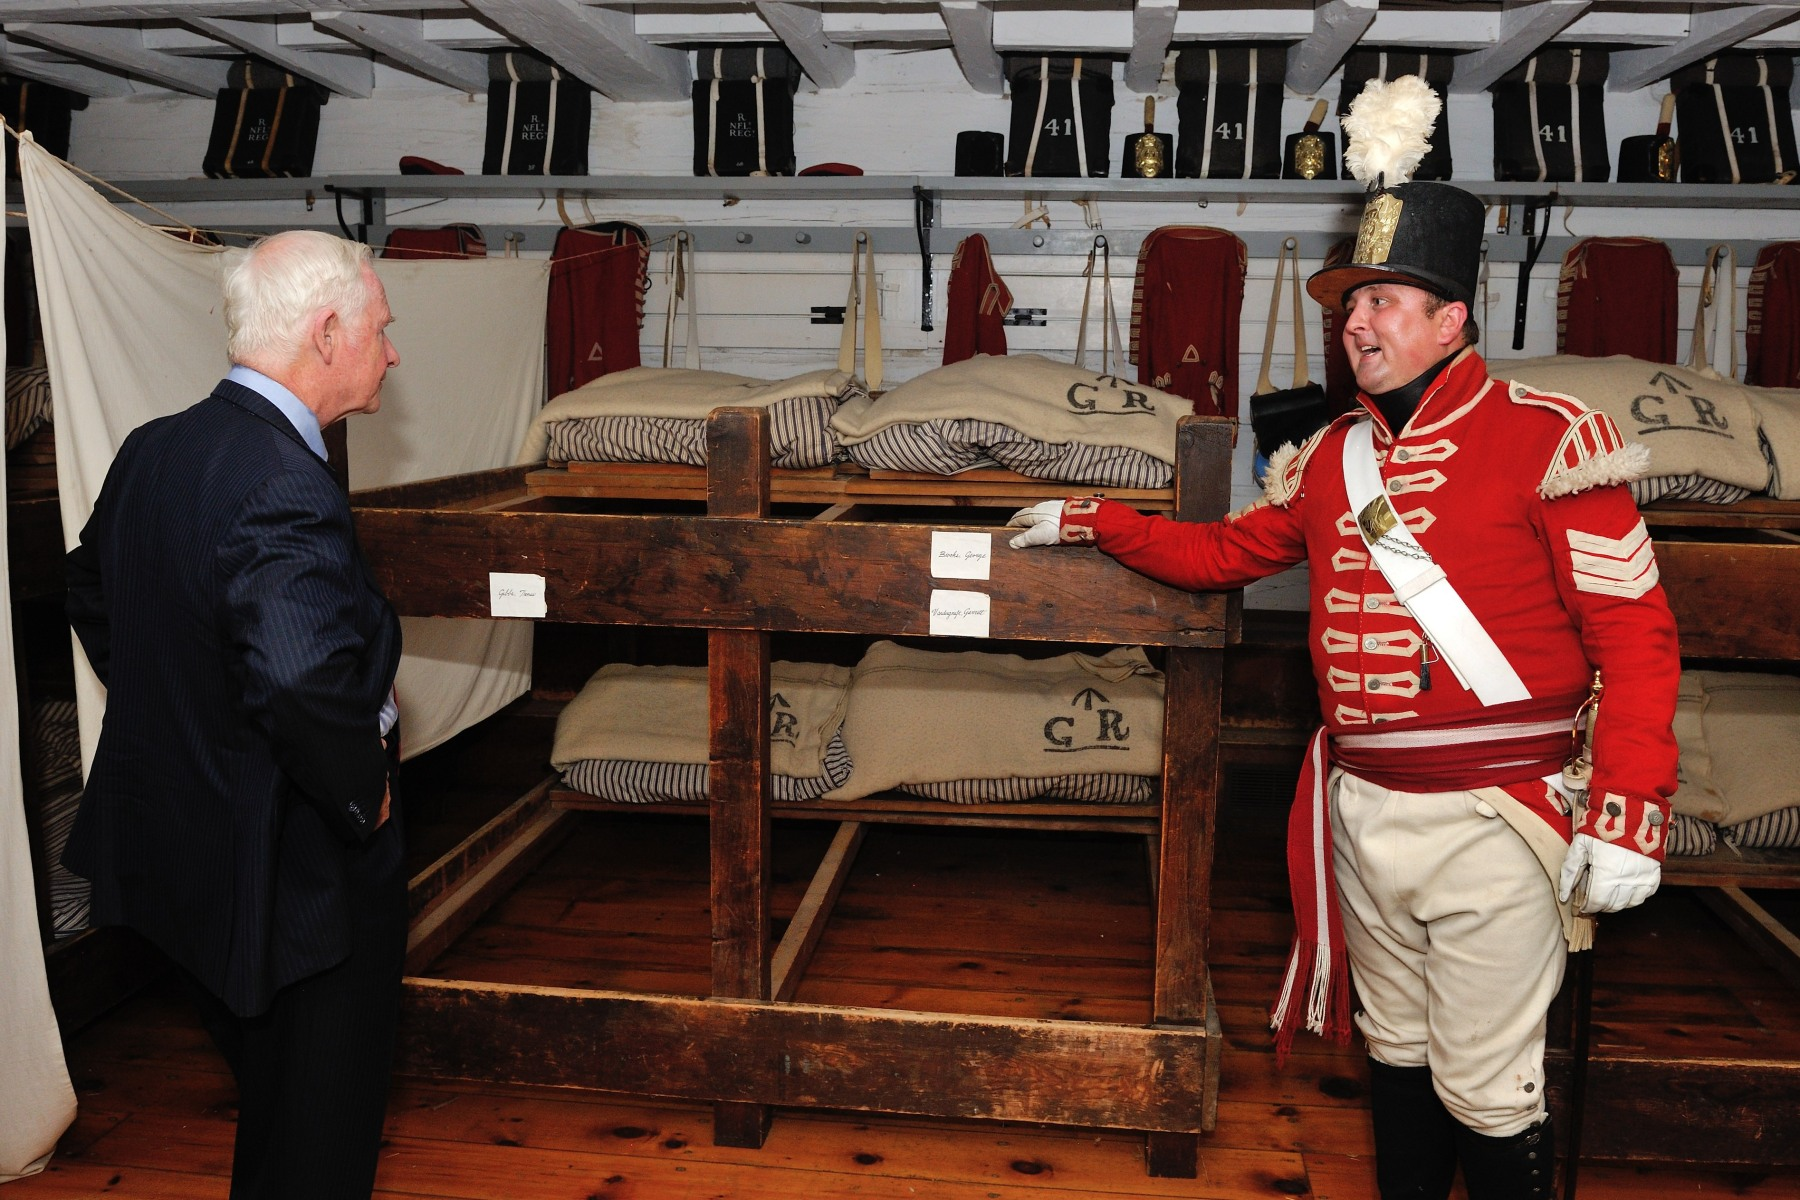 Fort George was completed and served as the headquarters for the Centre Division of the British Army during the War of 1812.During his visit, the Governor General toured the soldiers' barracks.